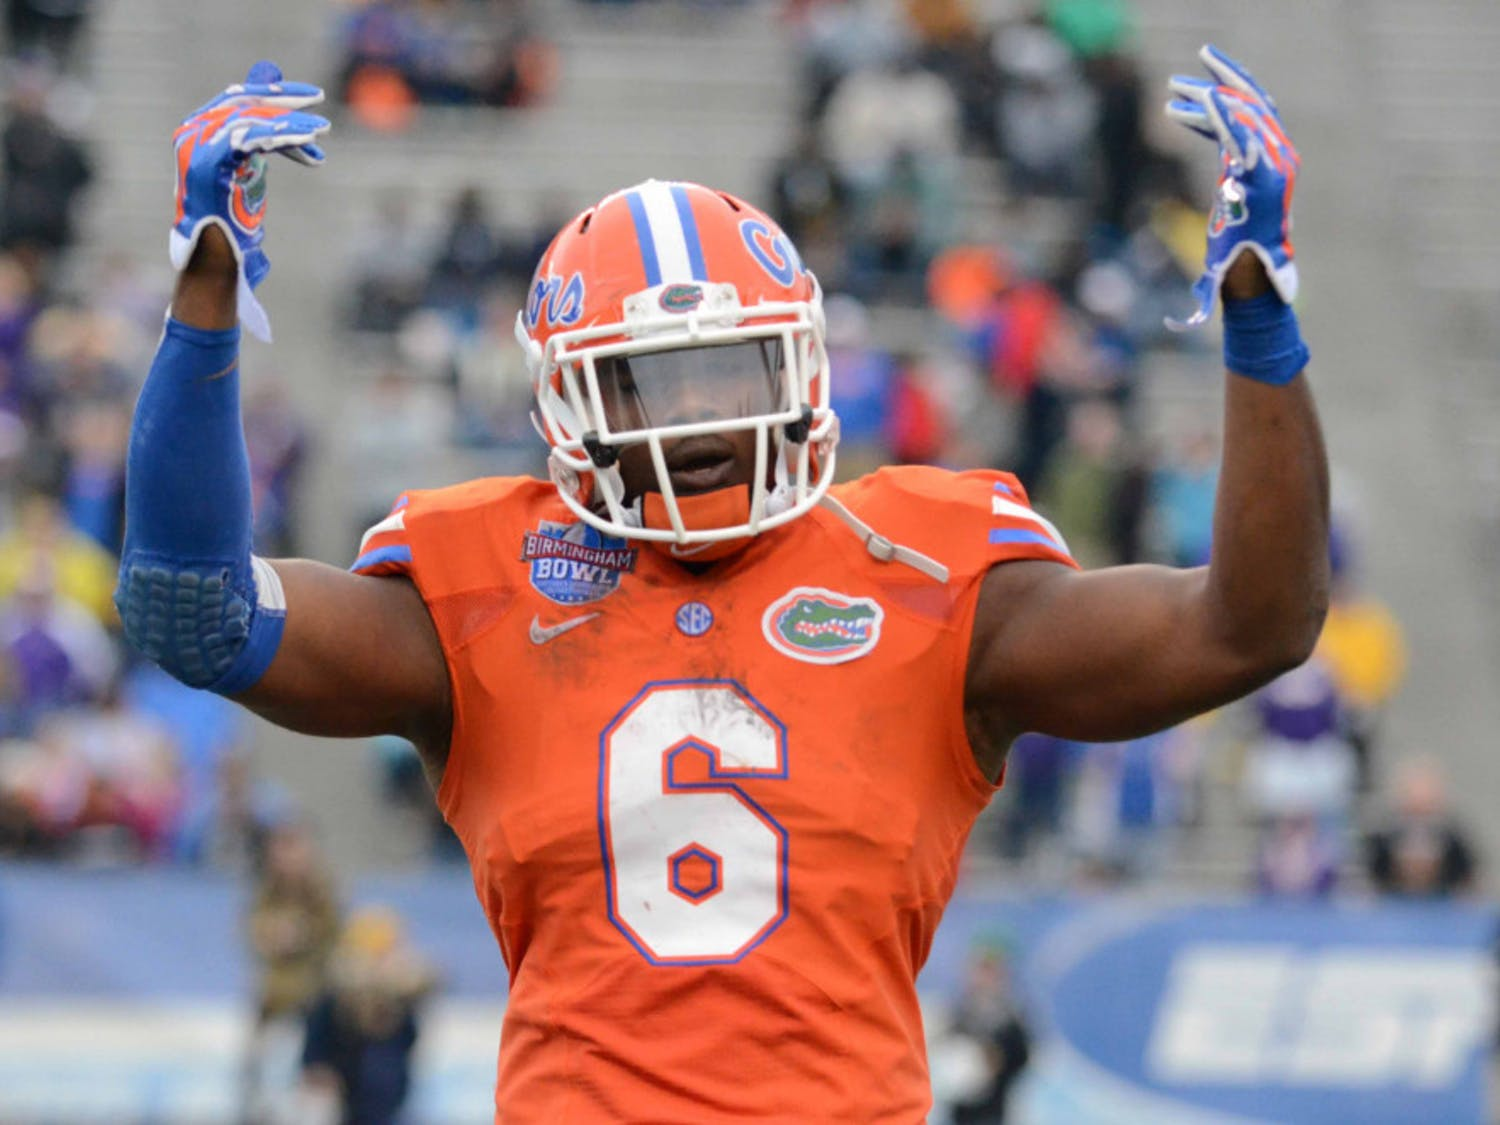 Dante Fowler Jr hypes up the crowd during Florida's 28-20 win in the Birmingham Bowl against East Carolina on Jan. 3 at Legion Field.